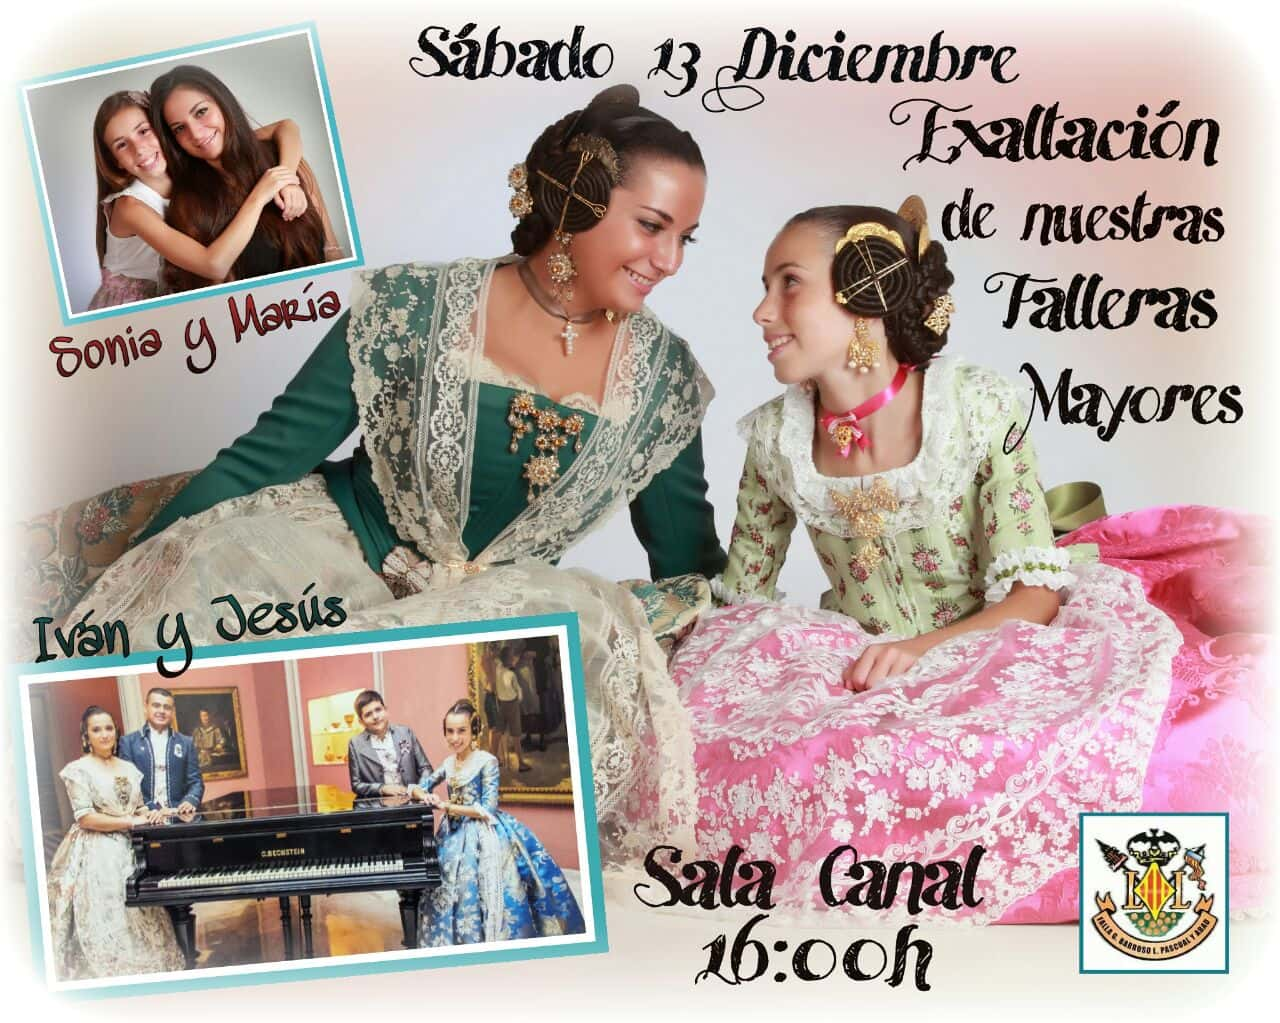 Presentation of the Falleras older 2015 of the Barroso General Falla - lithographer Pascual and Abbo 1